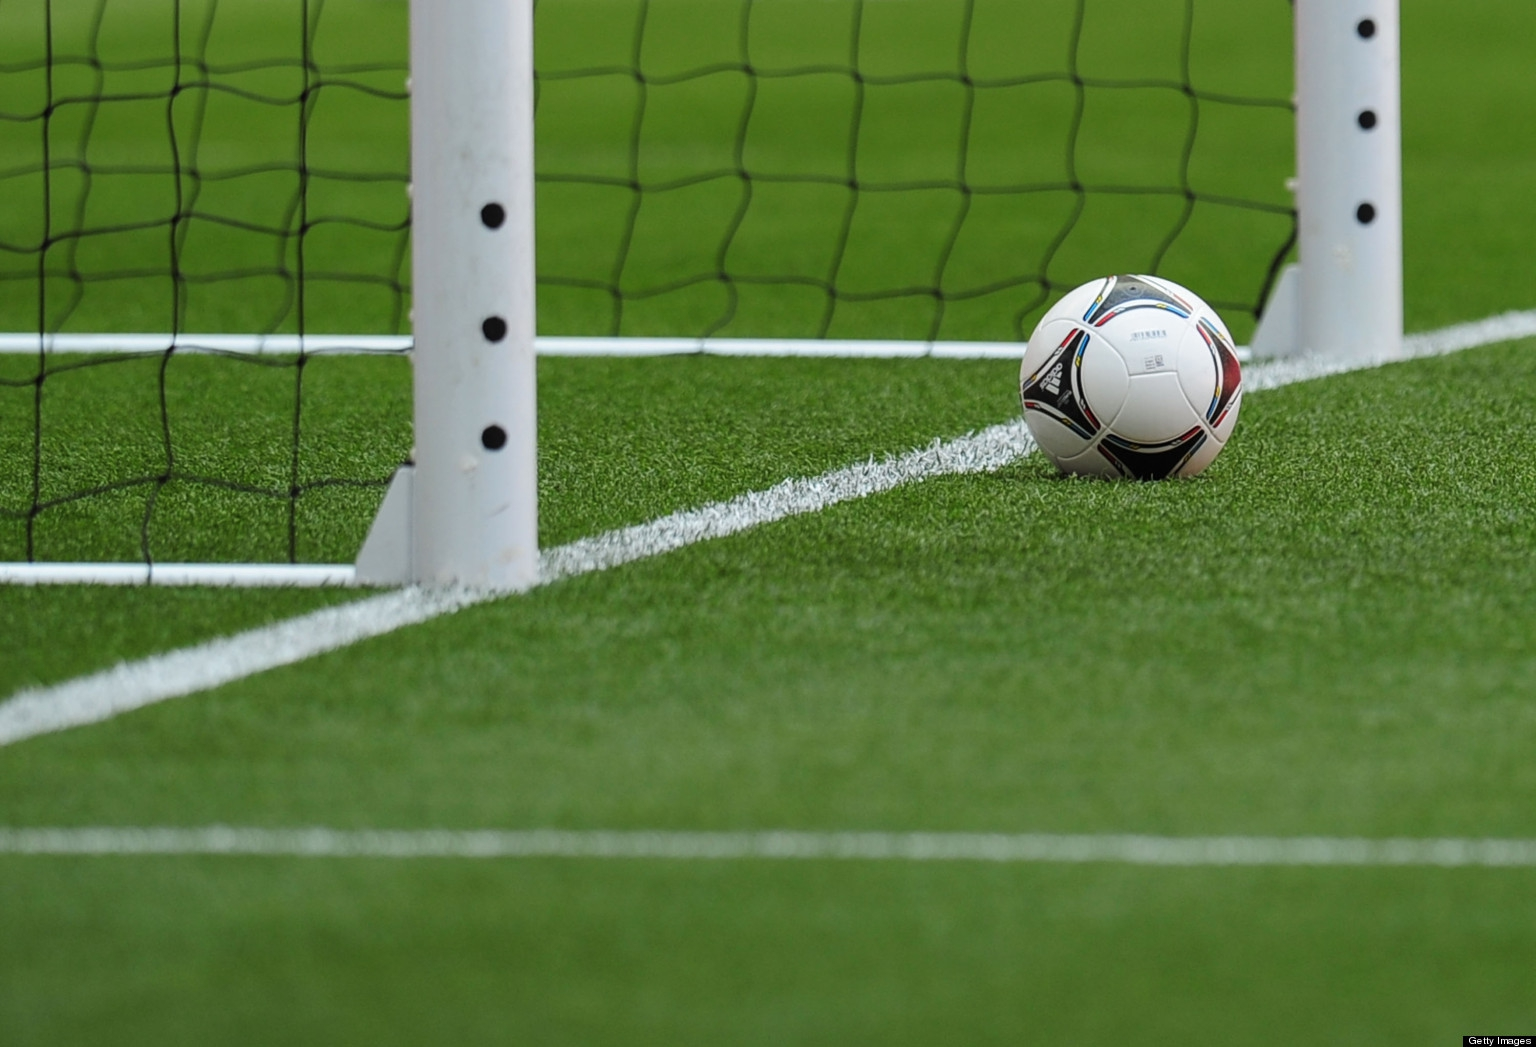 FIFA Approves Goal-Line Technology for 2014 World Cup